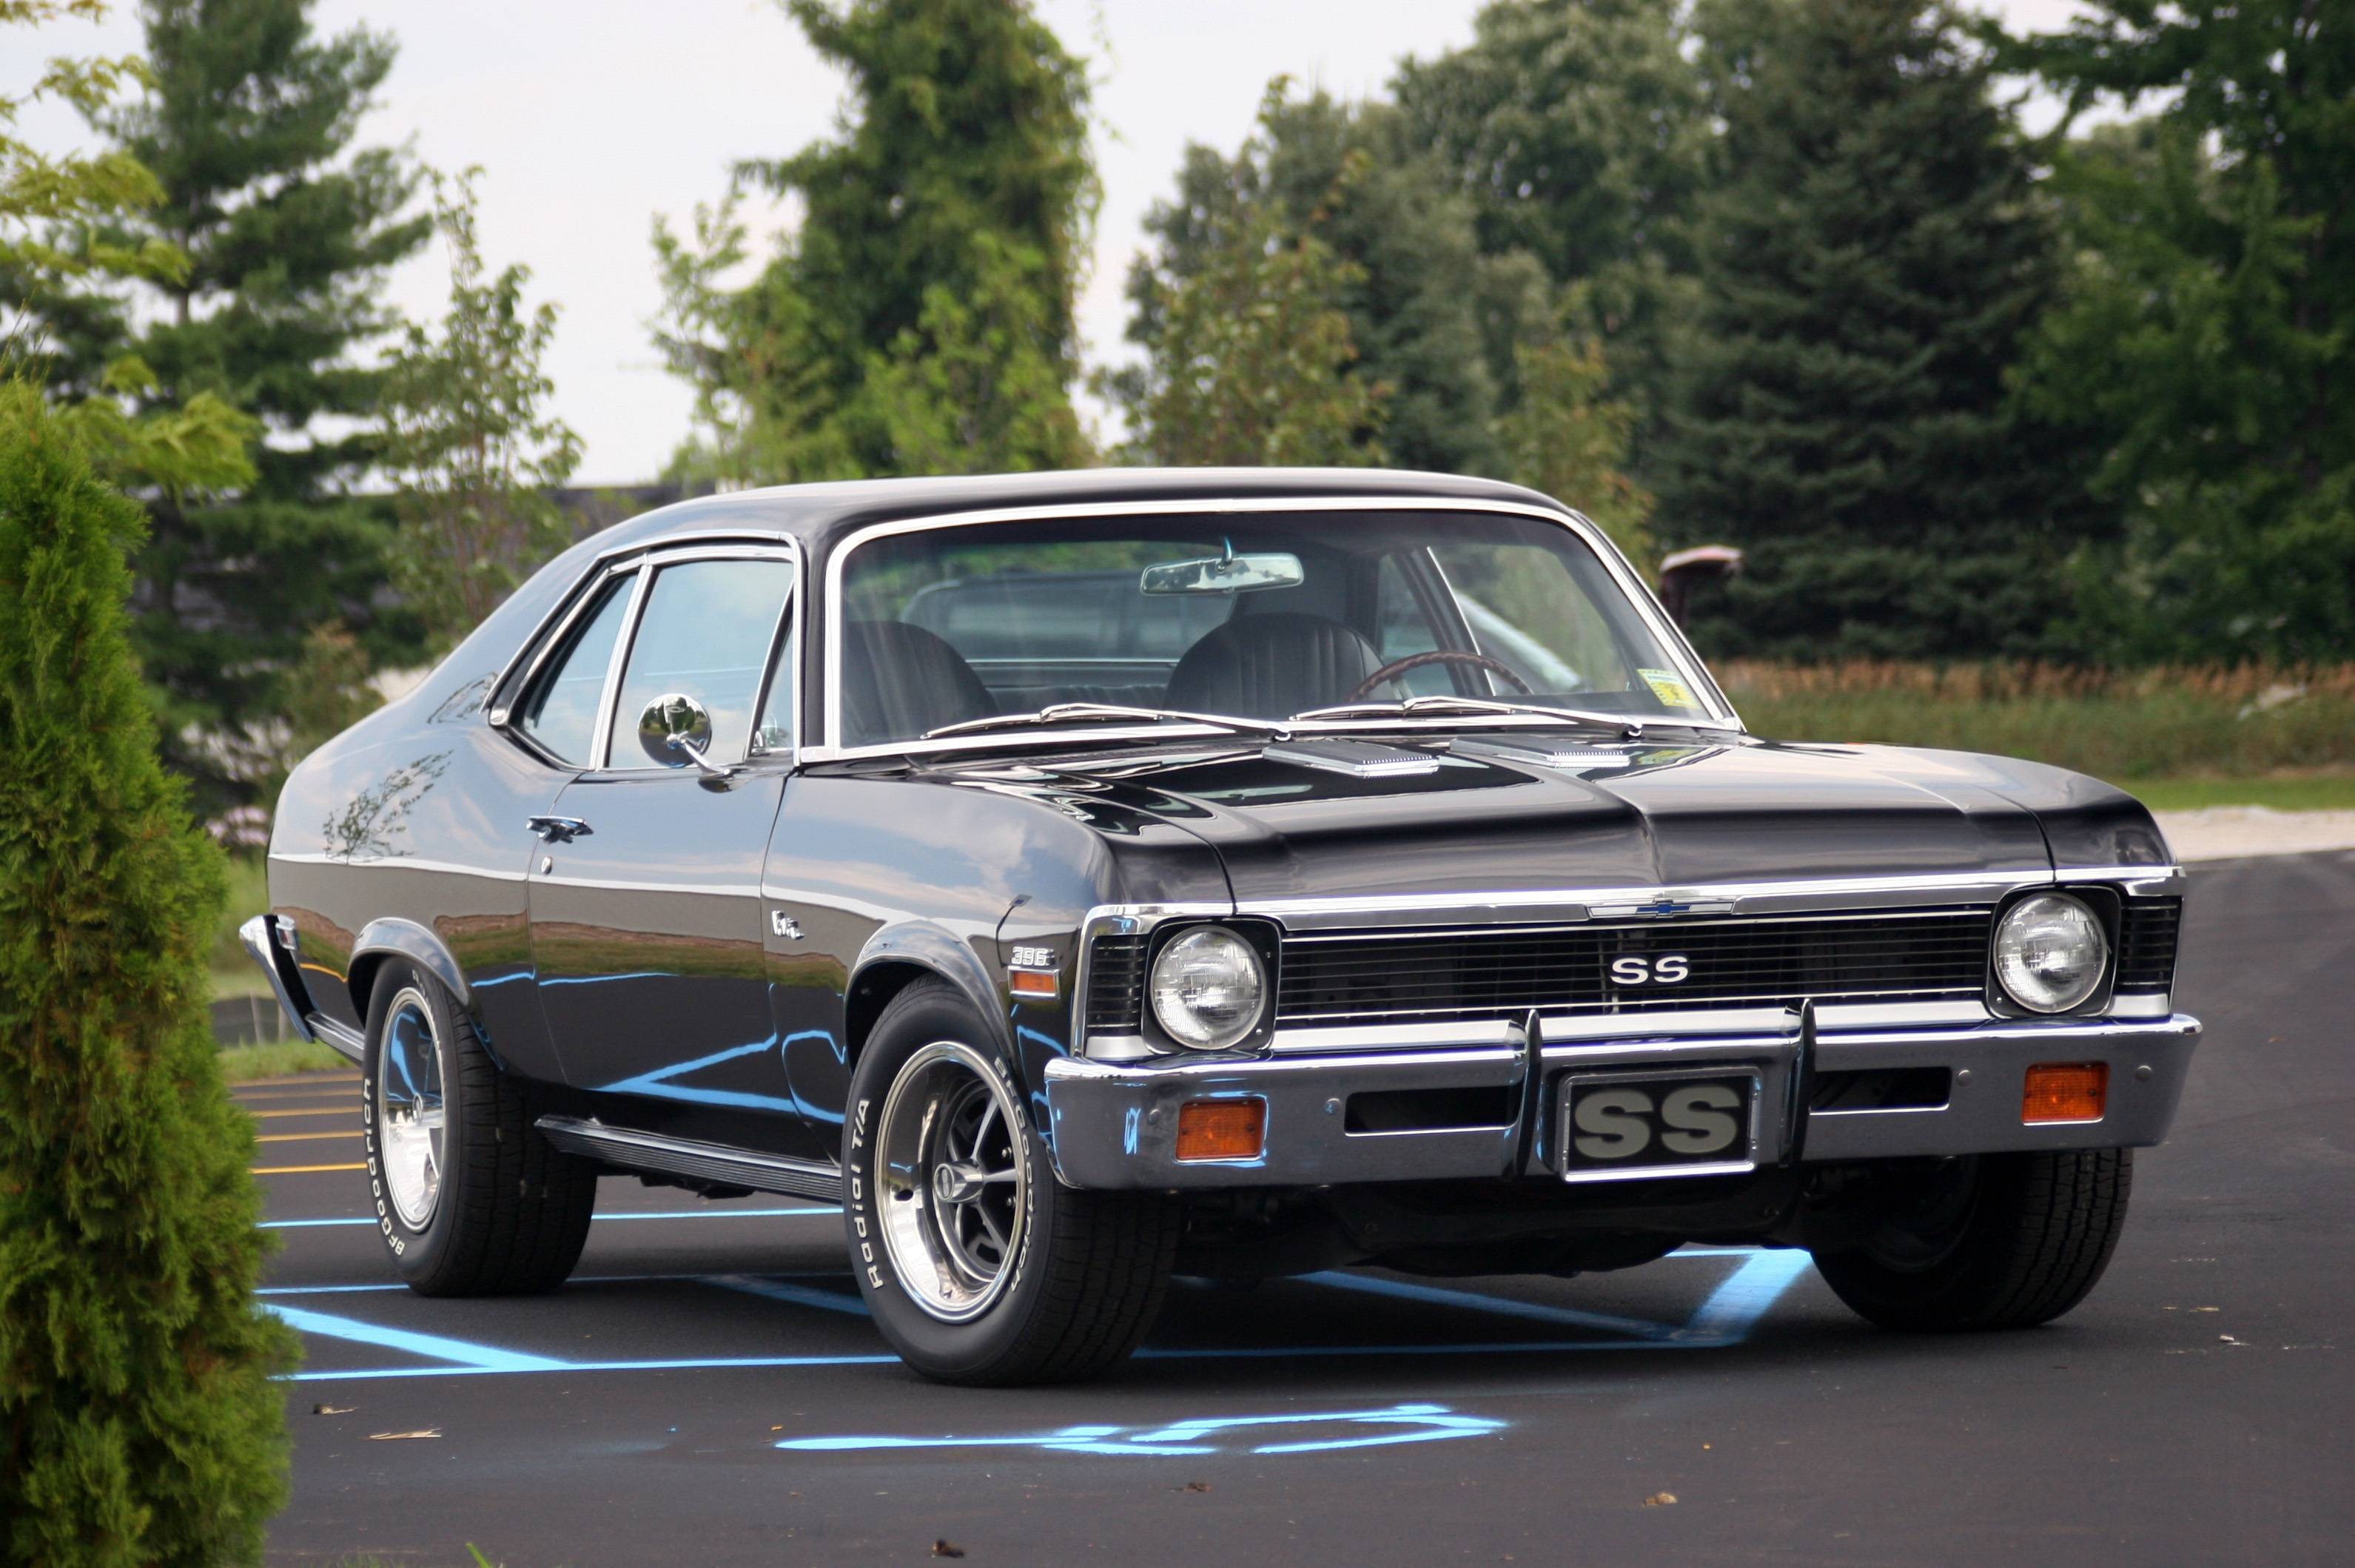 Muscle Car Hd Wallpapers 1080p Chevy Nova Wallpapers Wallpaper Cave